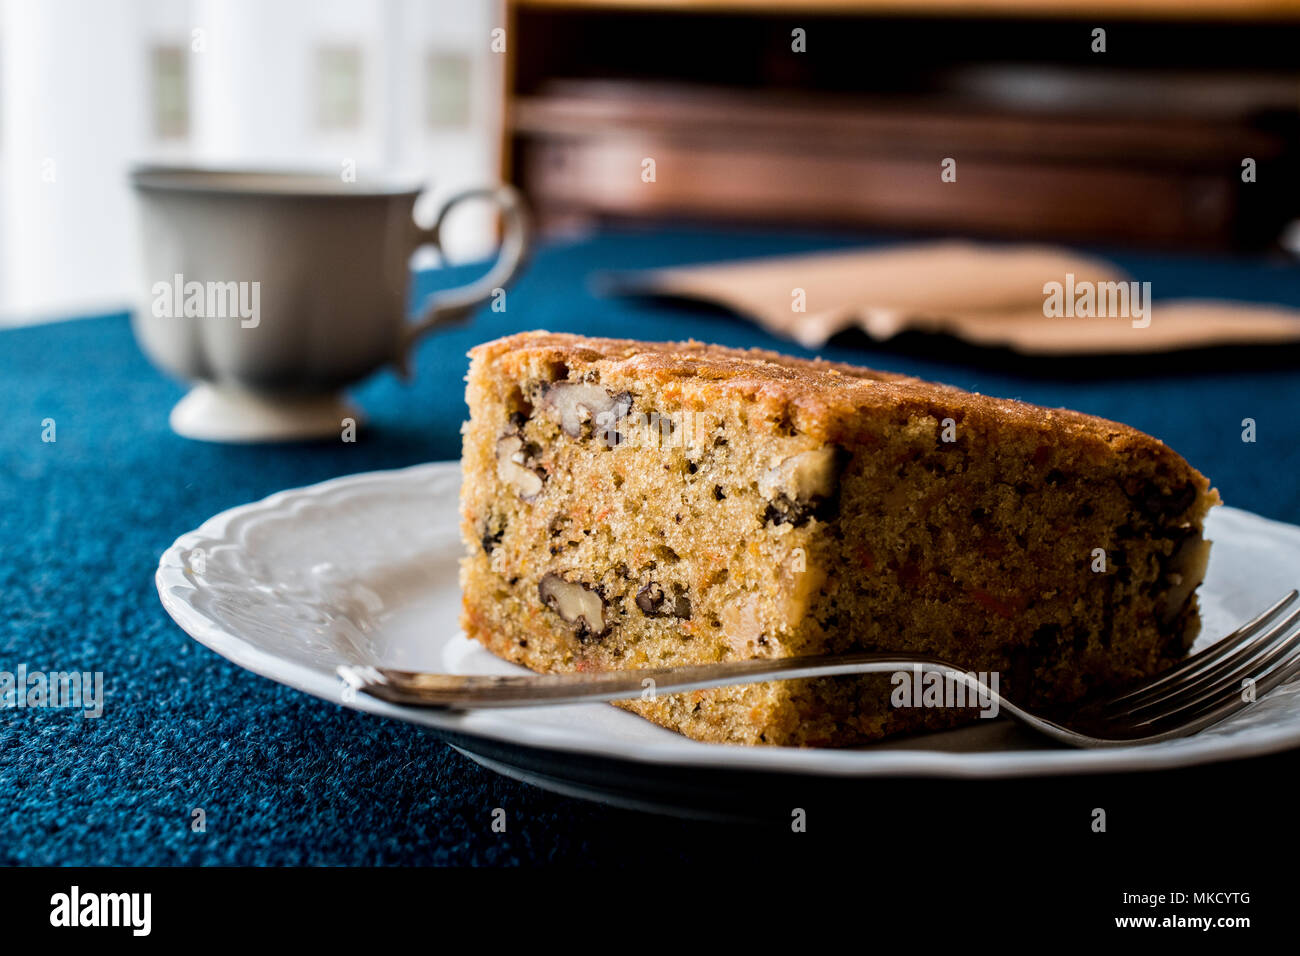 Carrot Cake with walnuts and cinnamon on blue surface. Stock Photo